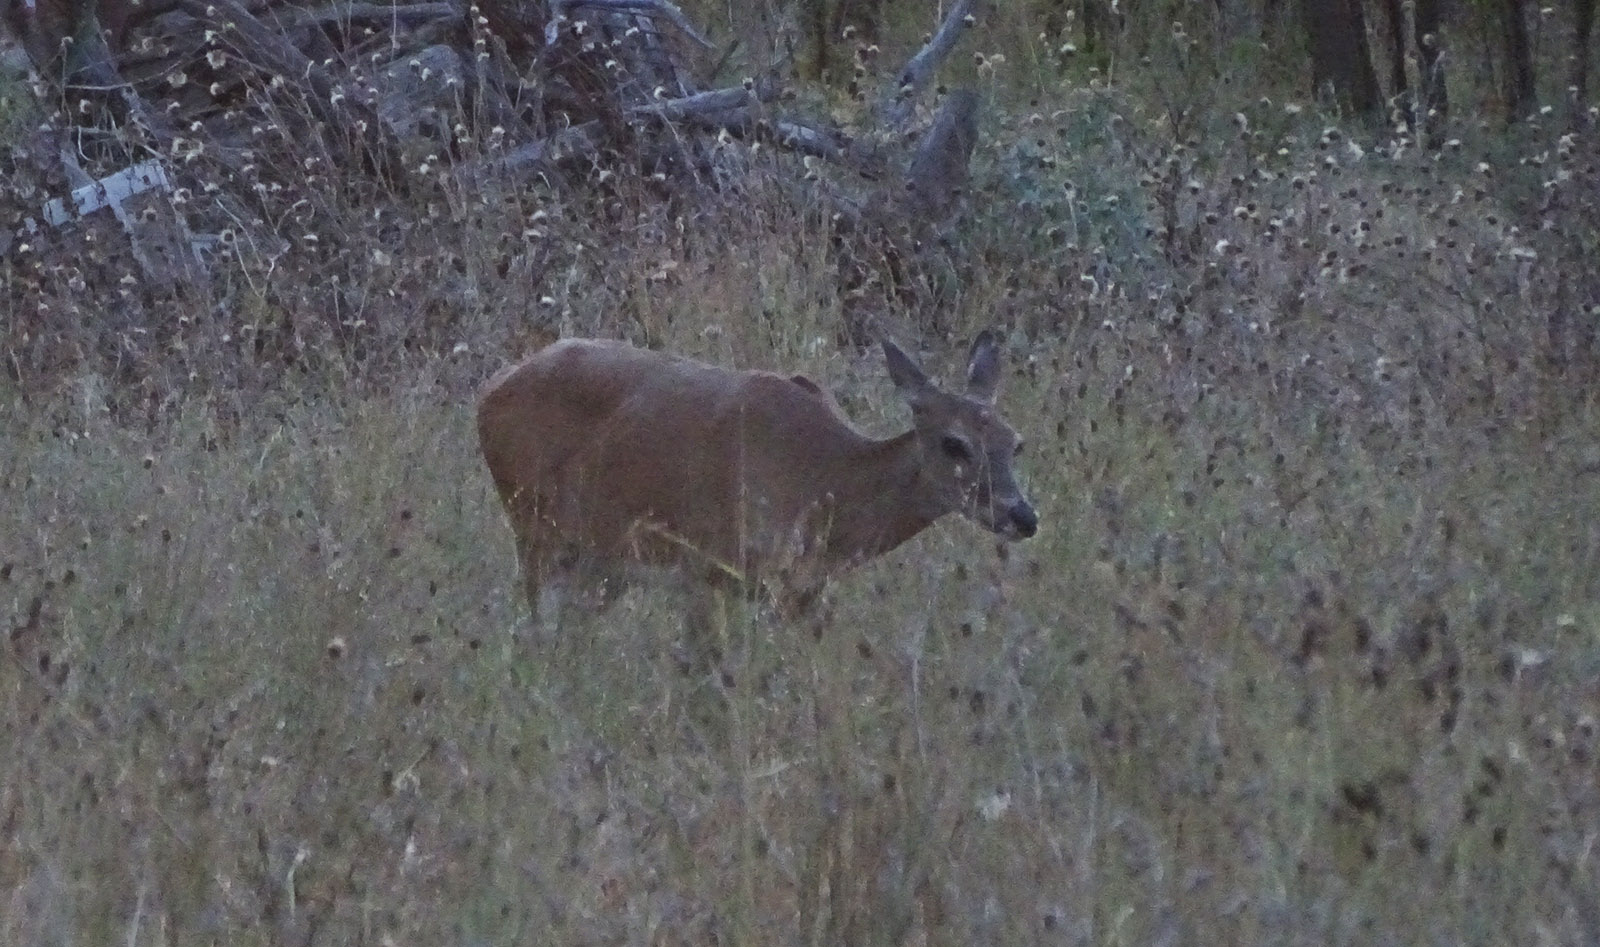 Whitetail deer buck doe fawn pictures in July by Robert Hoague